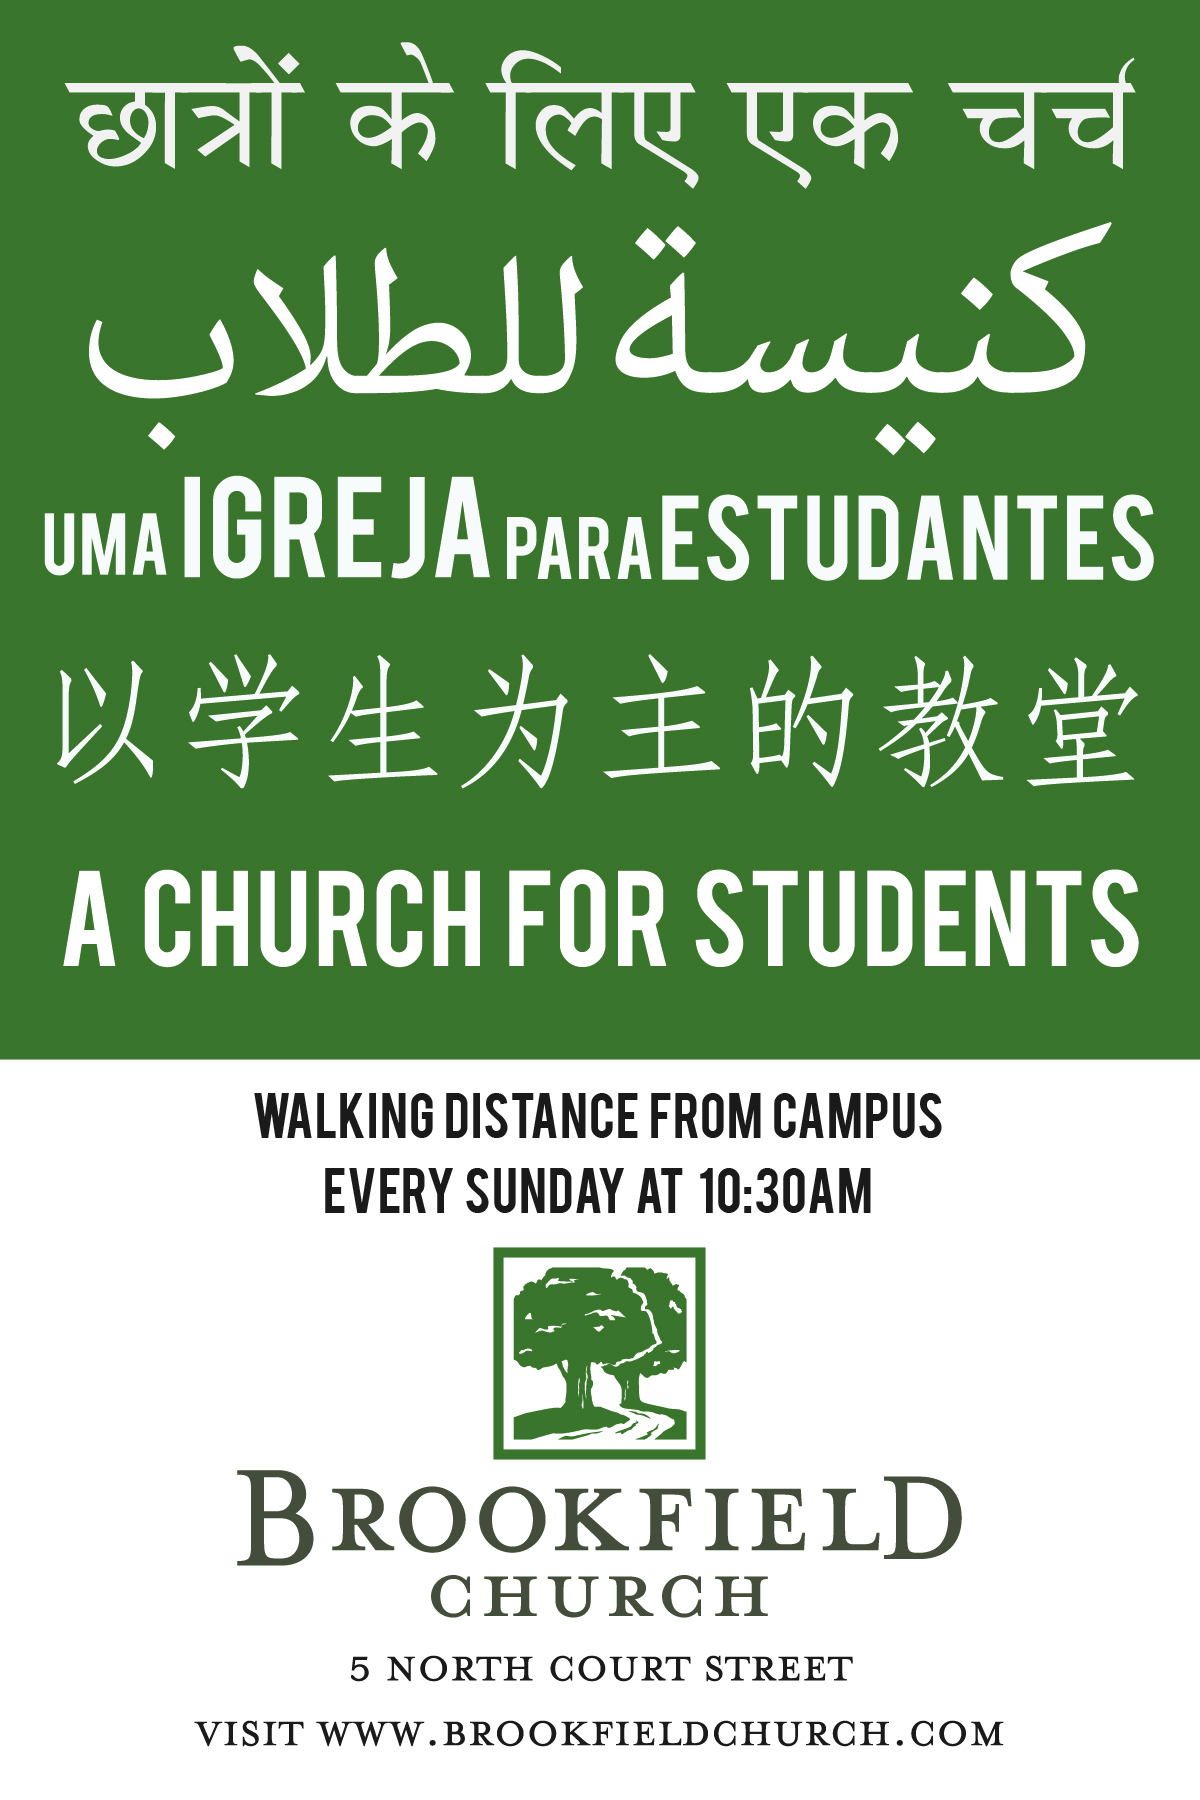 A multilingual advertisement for college students. Used as an 11x17in flyer and postcards.